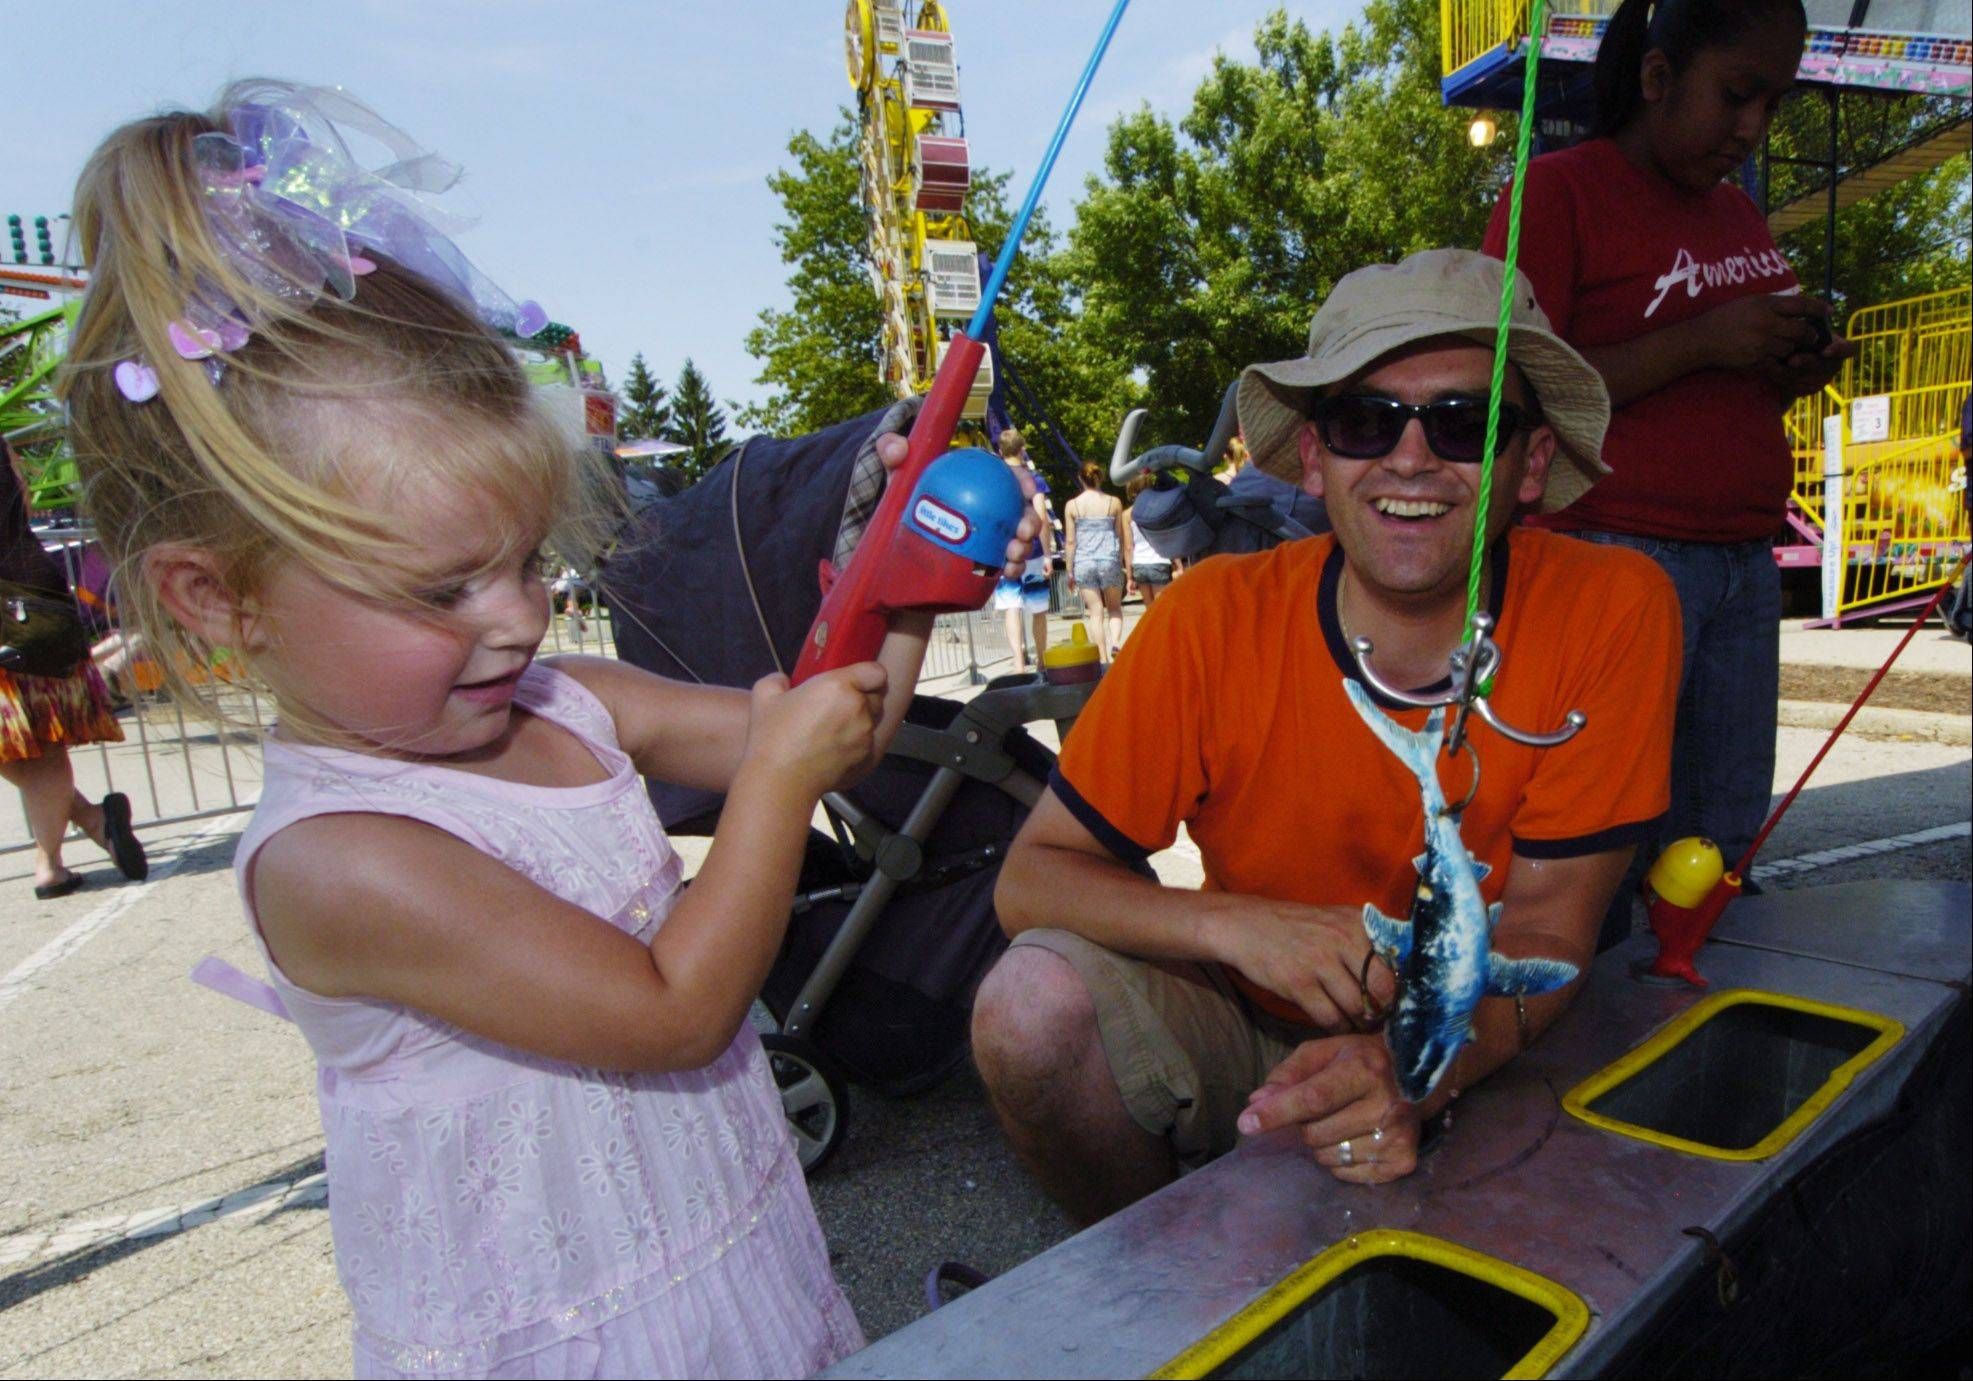 Karolina Sen, 2�, of Palatine catches a toy shark with the help of her dad, Piotr, during the Palatine Jaycees Hometown Fest.